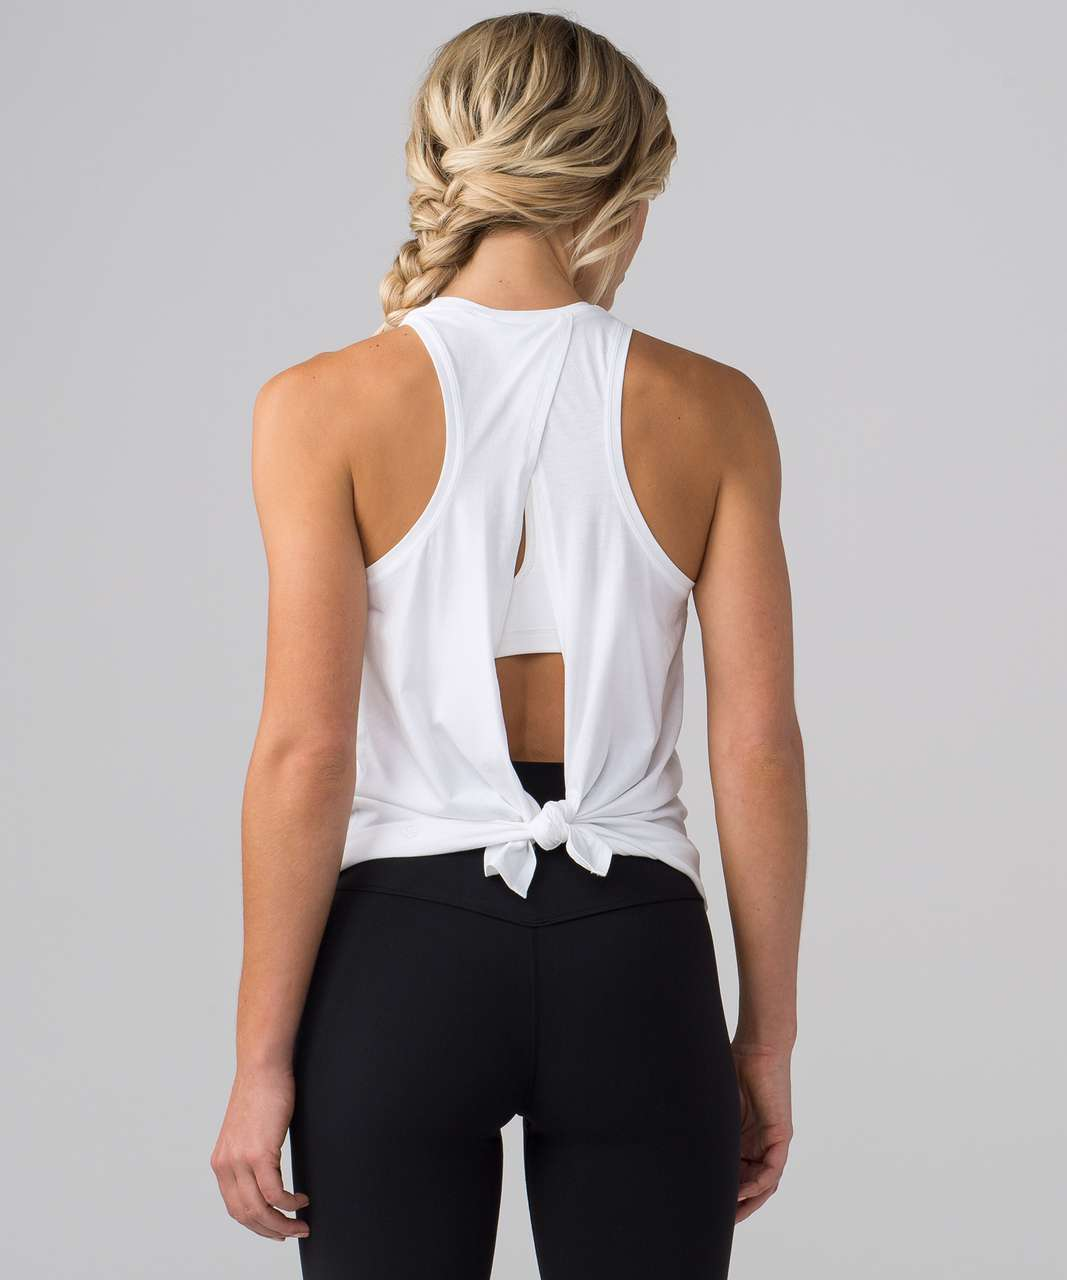 Image result for lululemon tie back tank